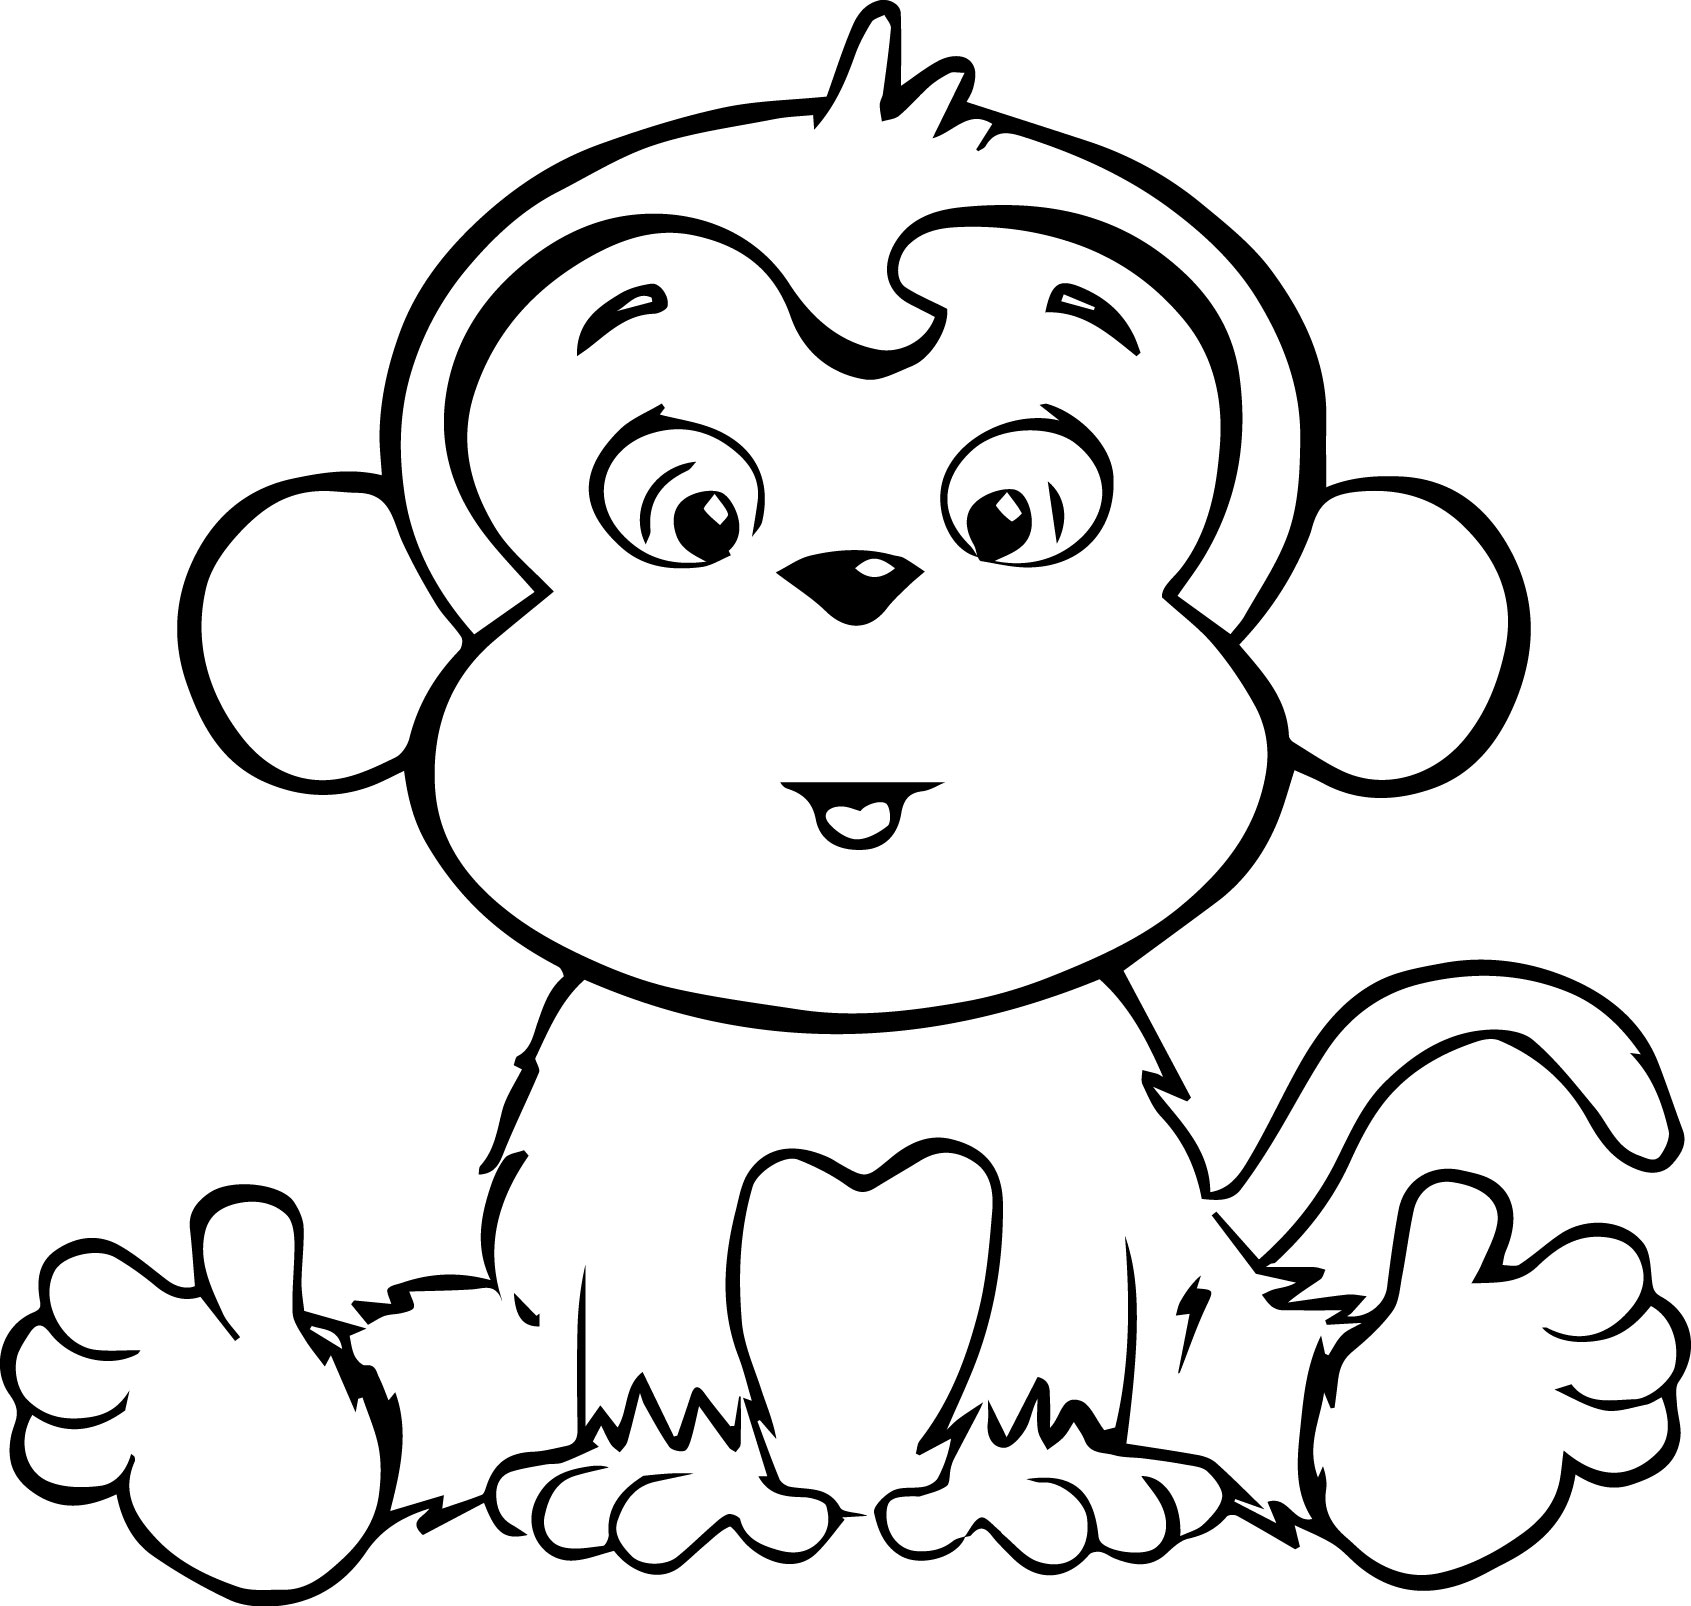 1691x1606 Cartoon Monkey Drawing Cute Drawings Of Monkeys How To Draw A